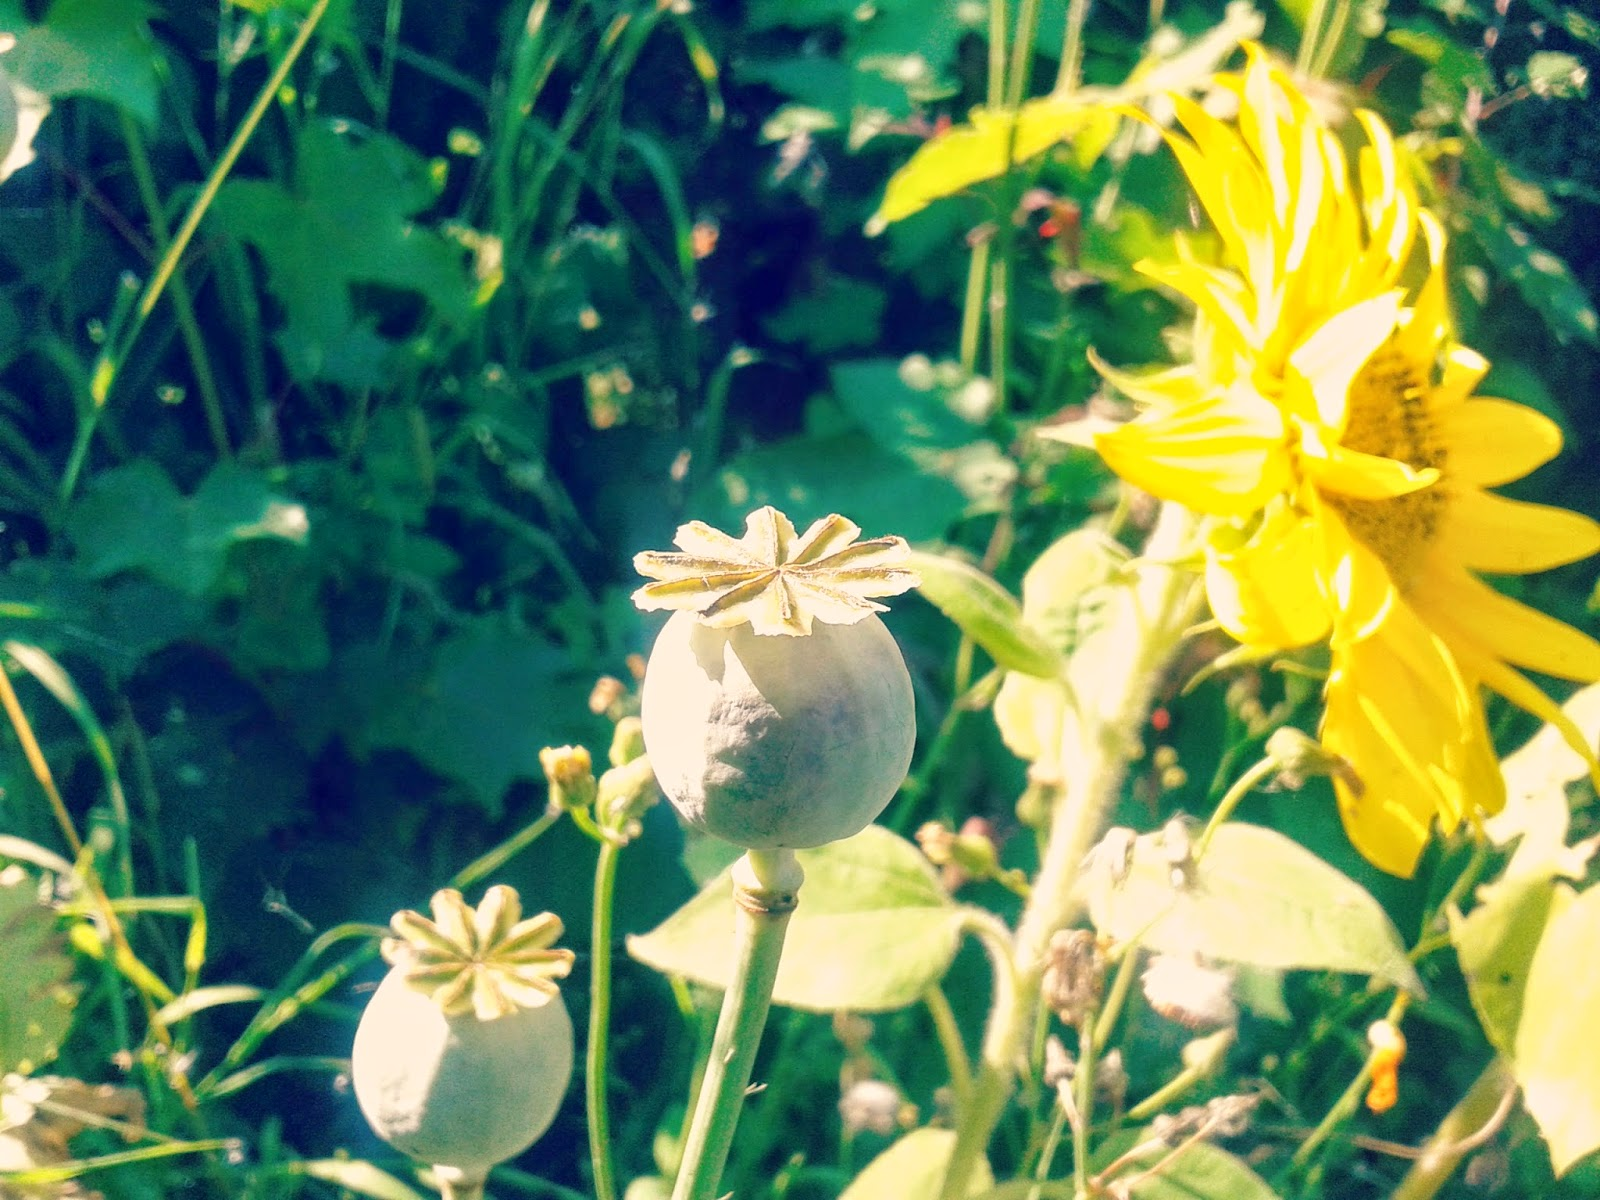 Project 365 day 205 - Poppies & sunflowers // 76sunflowers